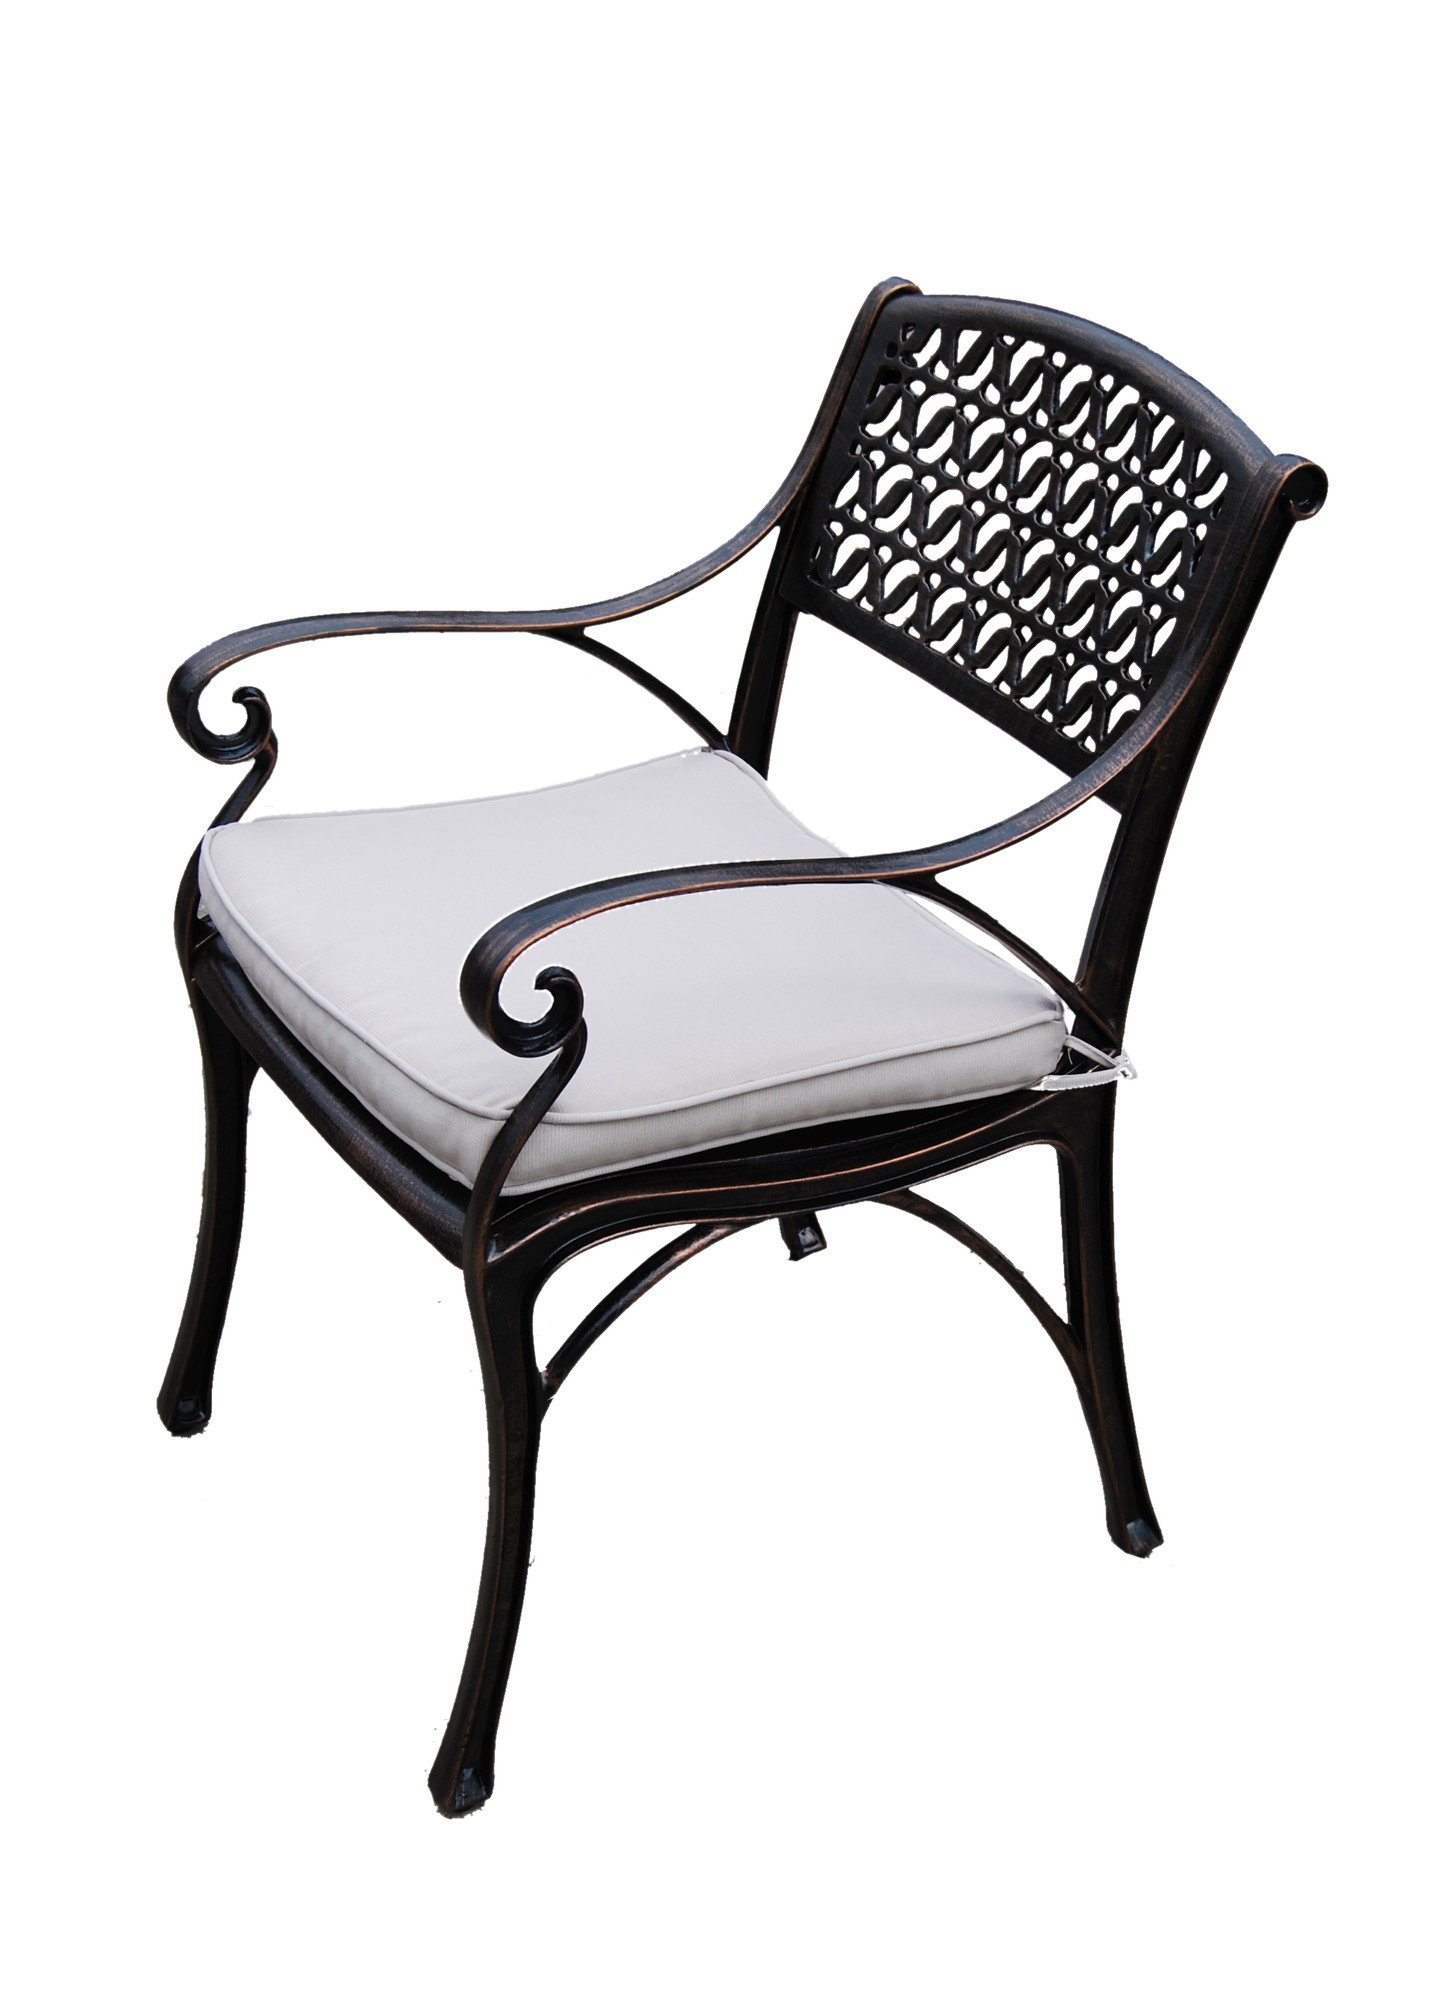 arms size with chair walmart of full wicker furniture dining metal modern ikea patio stackable stacking lounge chairs outdoor